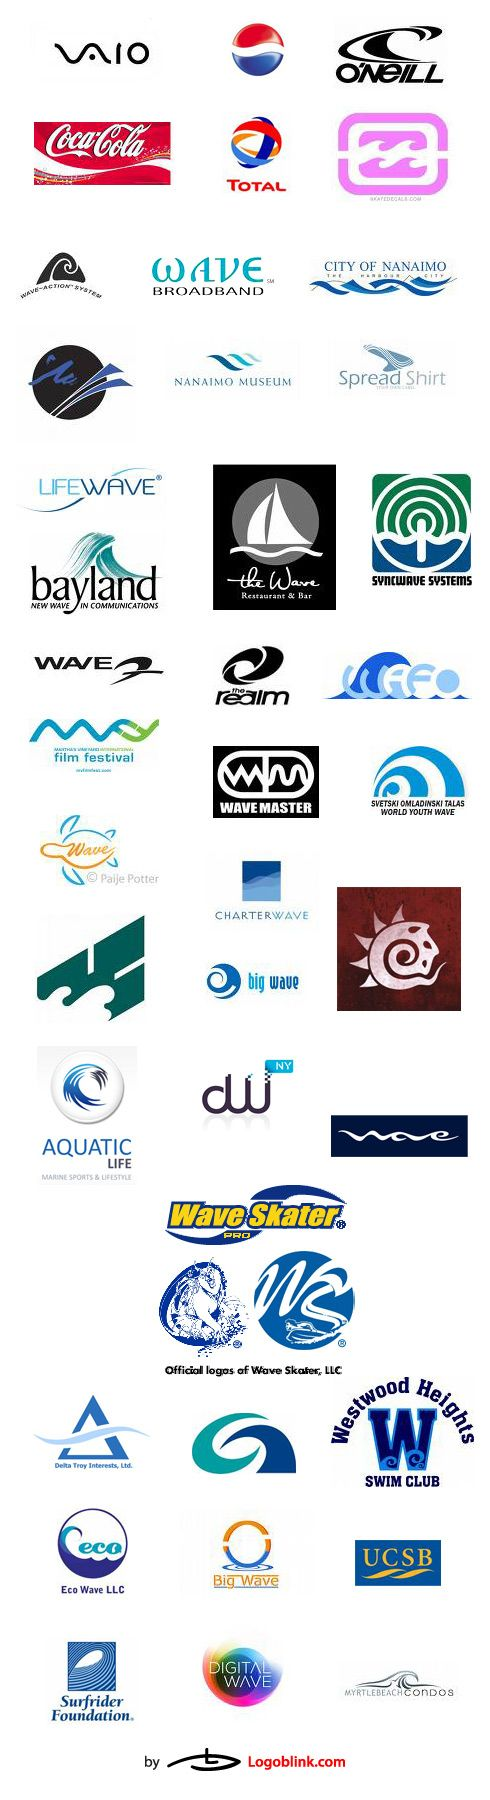 wave logo design brands